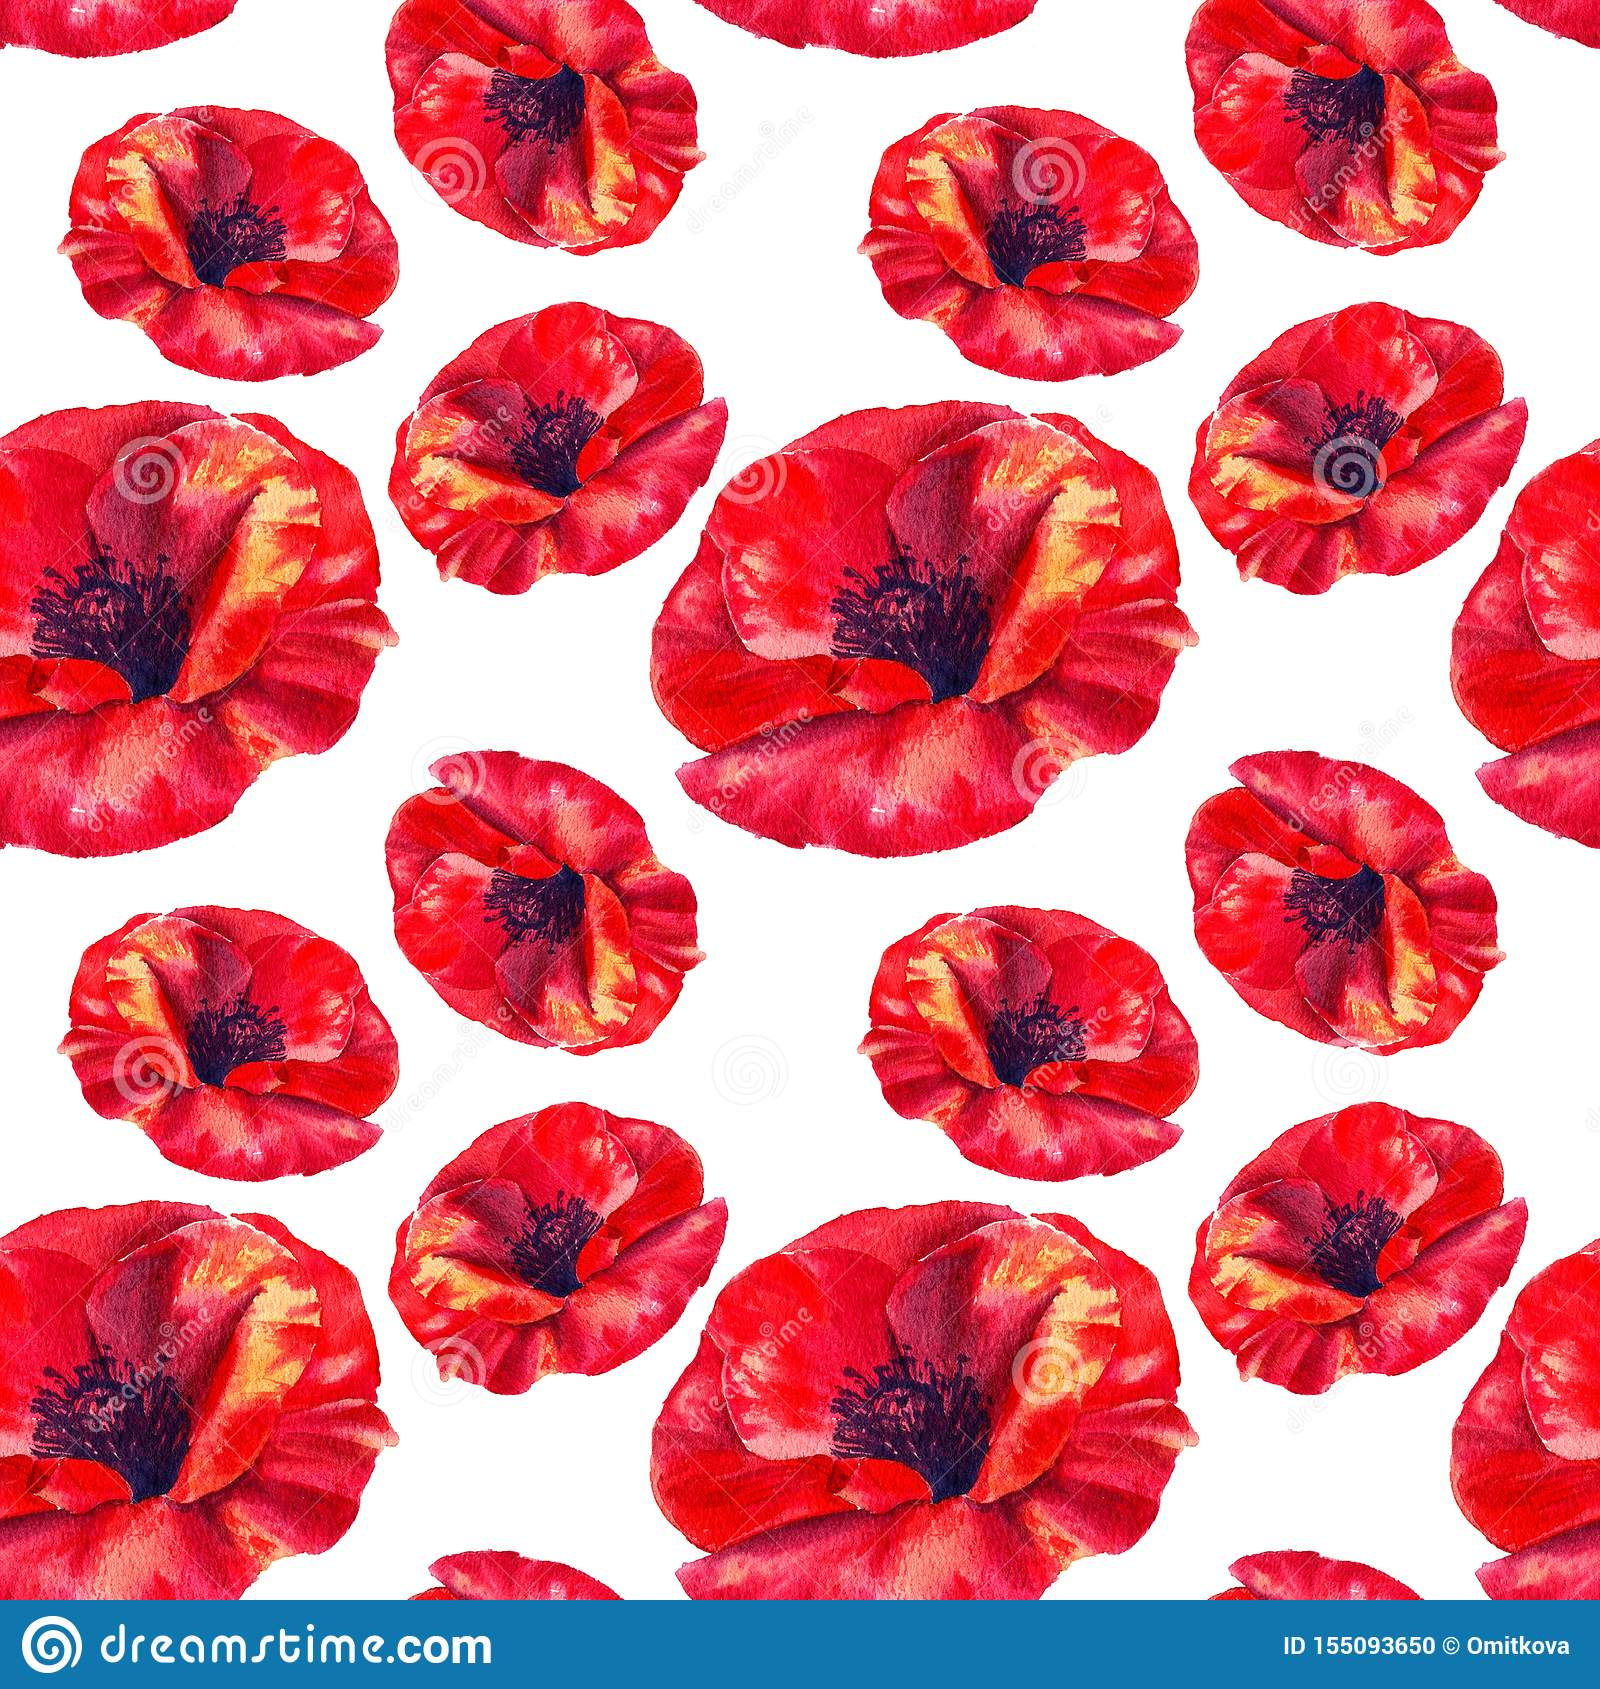 Red poppies on a white background. Floral seamless pattern with big bright flowers.Summer watercolour illustration for